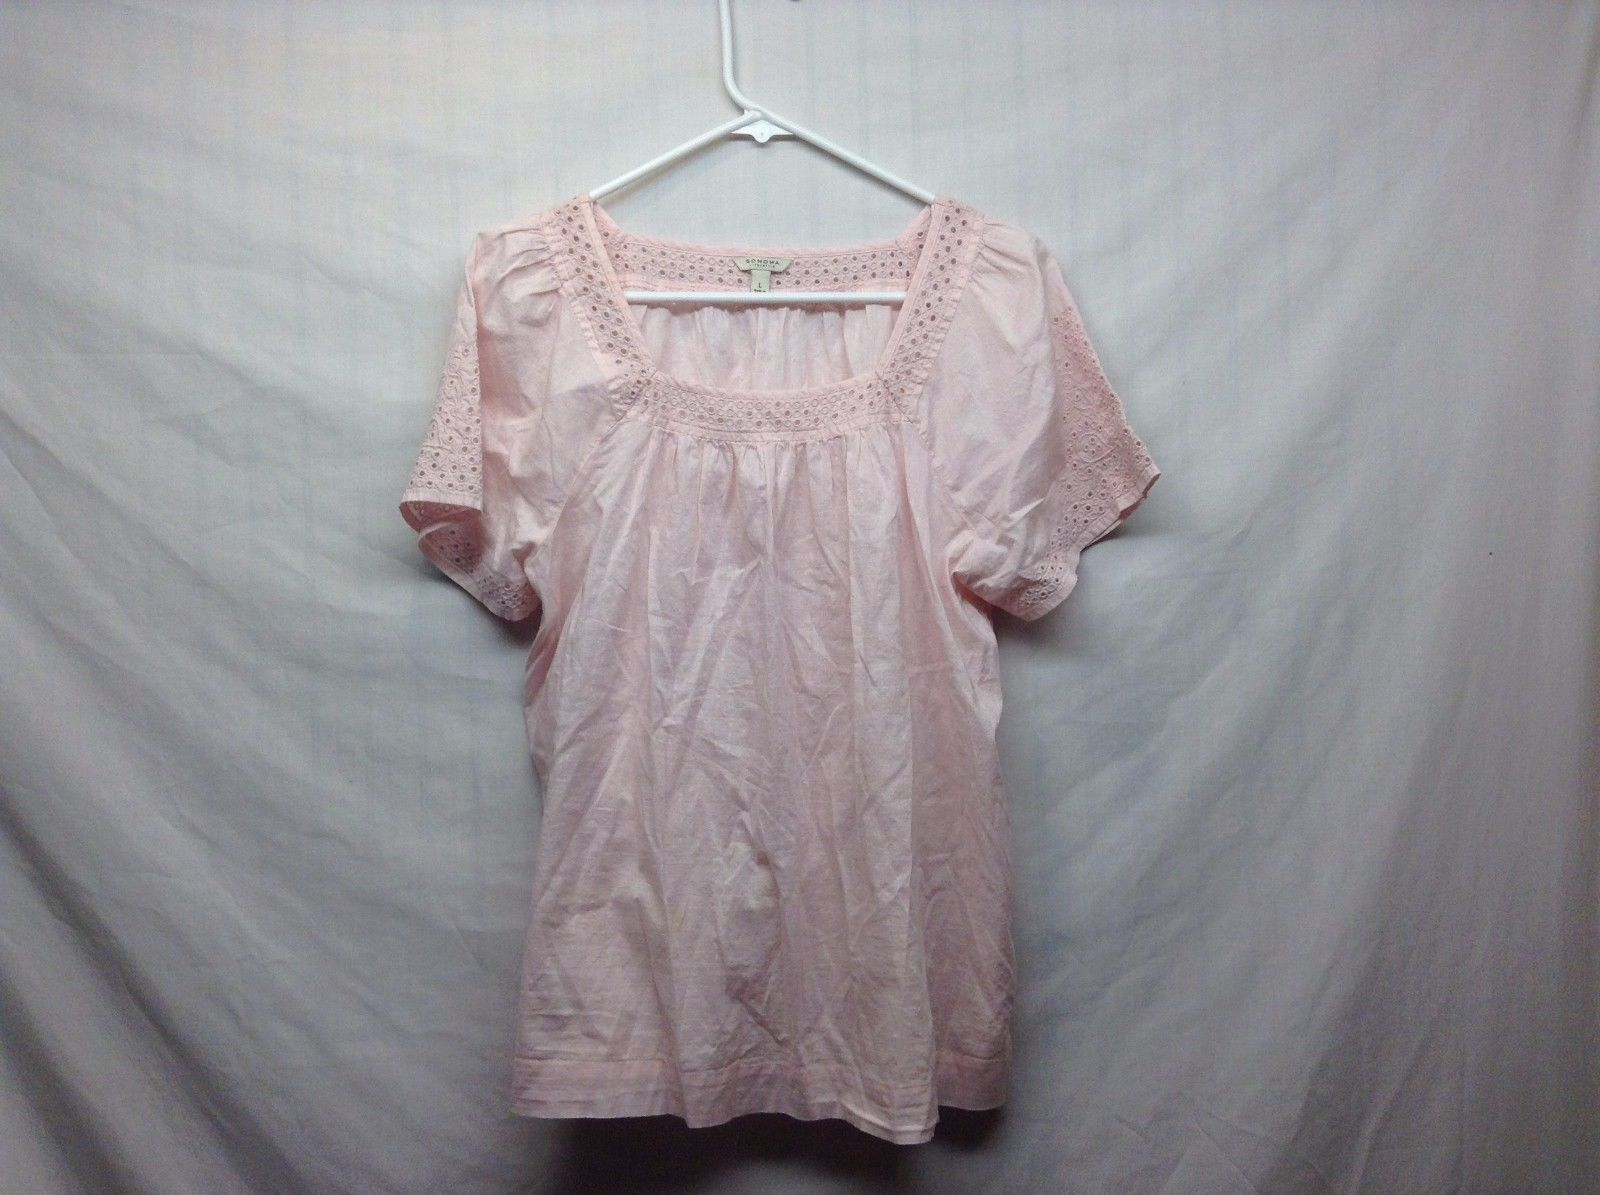 Sonoma Soft Pink Light Weight Circular Laced Scoop Neck Shirt Sz LG